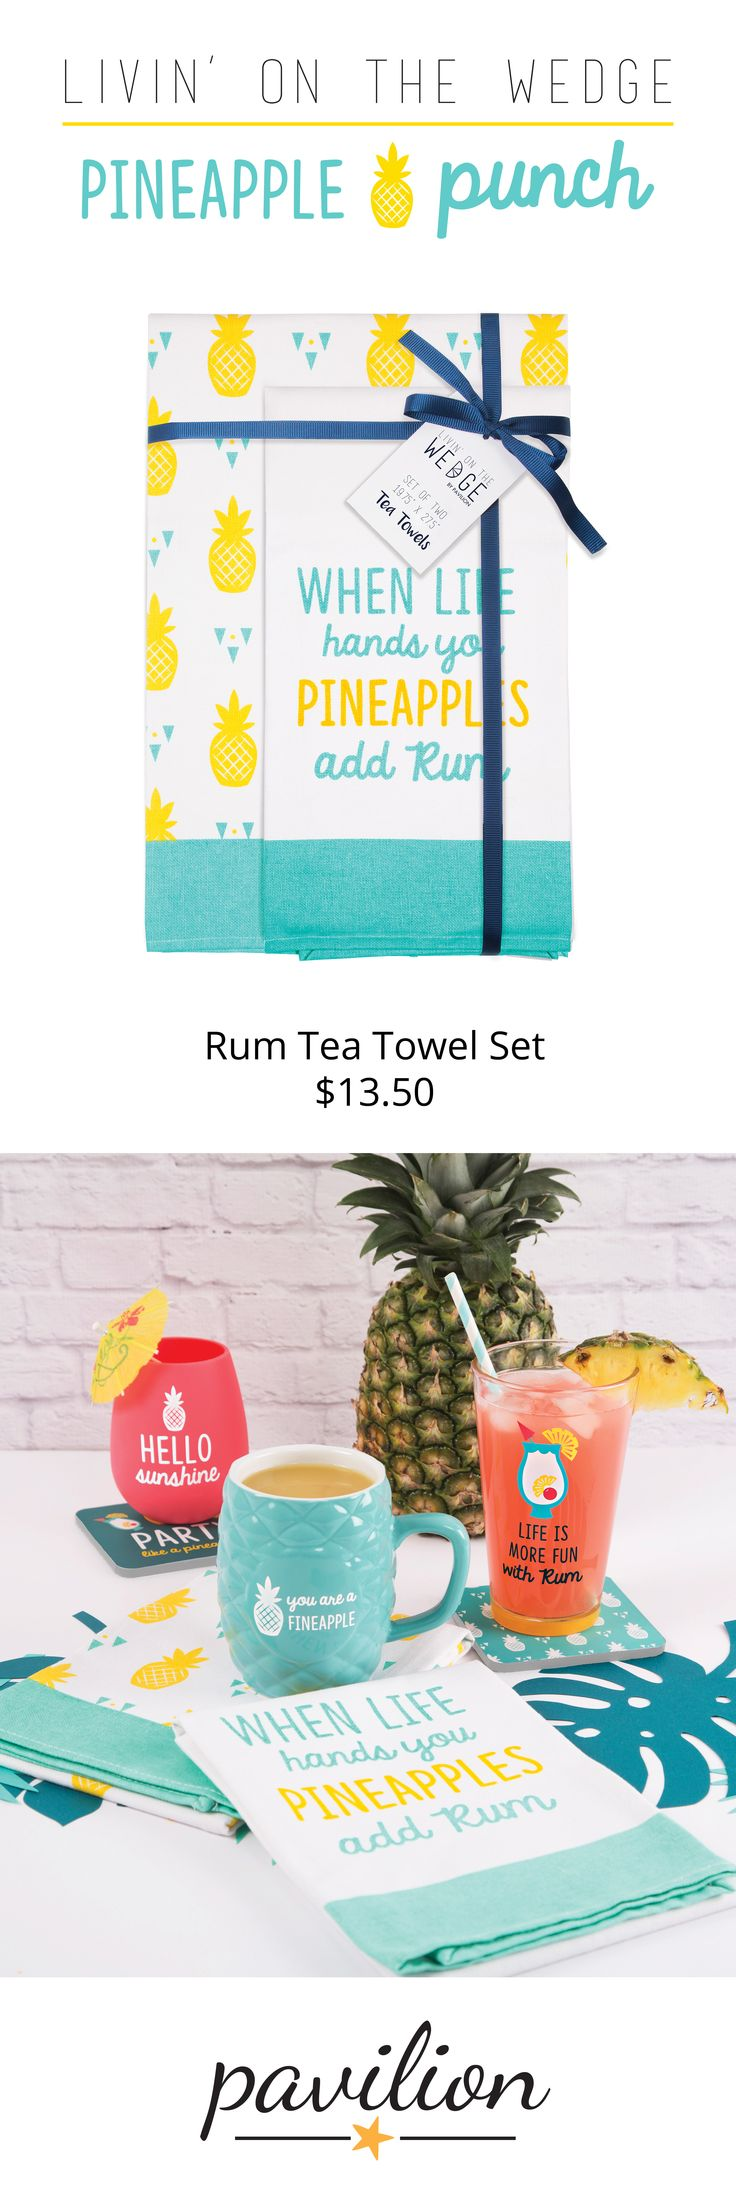 Livin' on the Wedge by Pavilion - Pineapple Punch Collection - When Life Hands You Pineapples Add Rum Teal & Yellow Summer Tea Towel Set Bar Decor